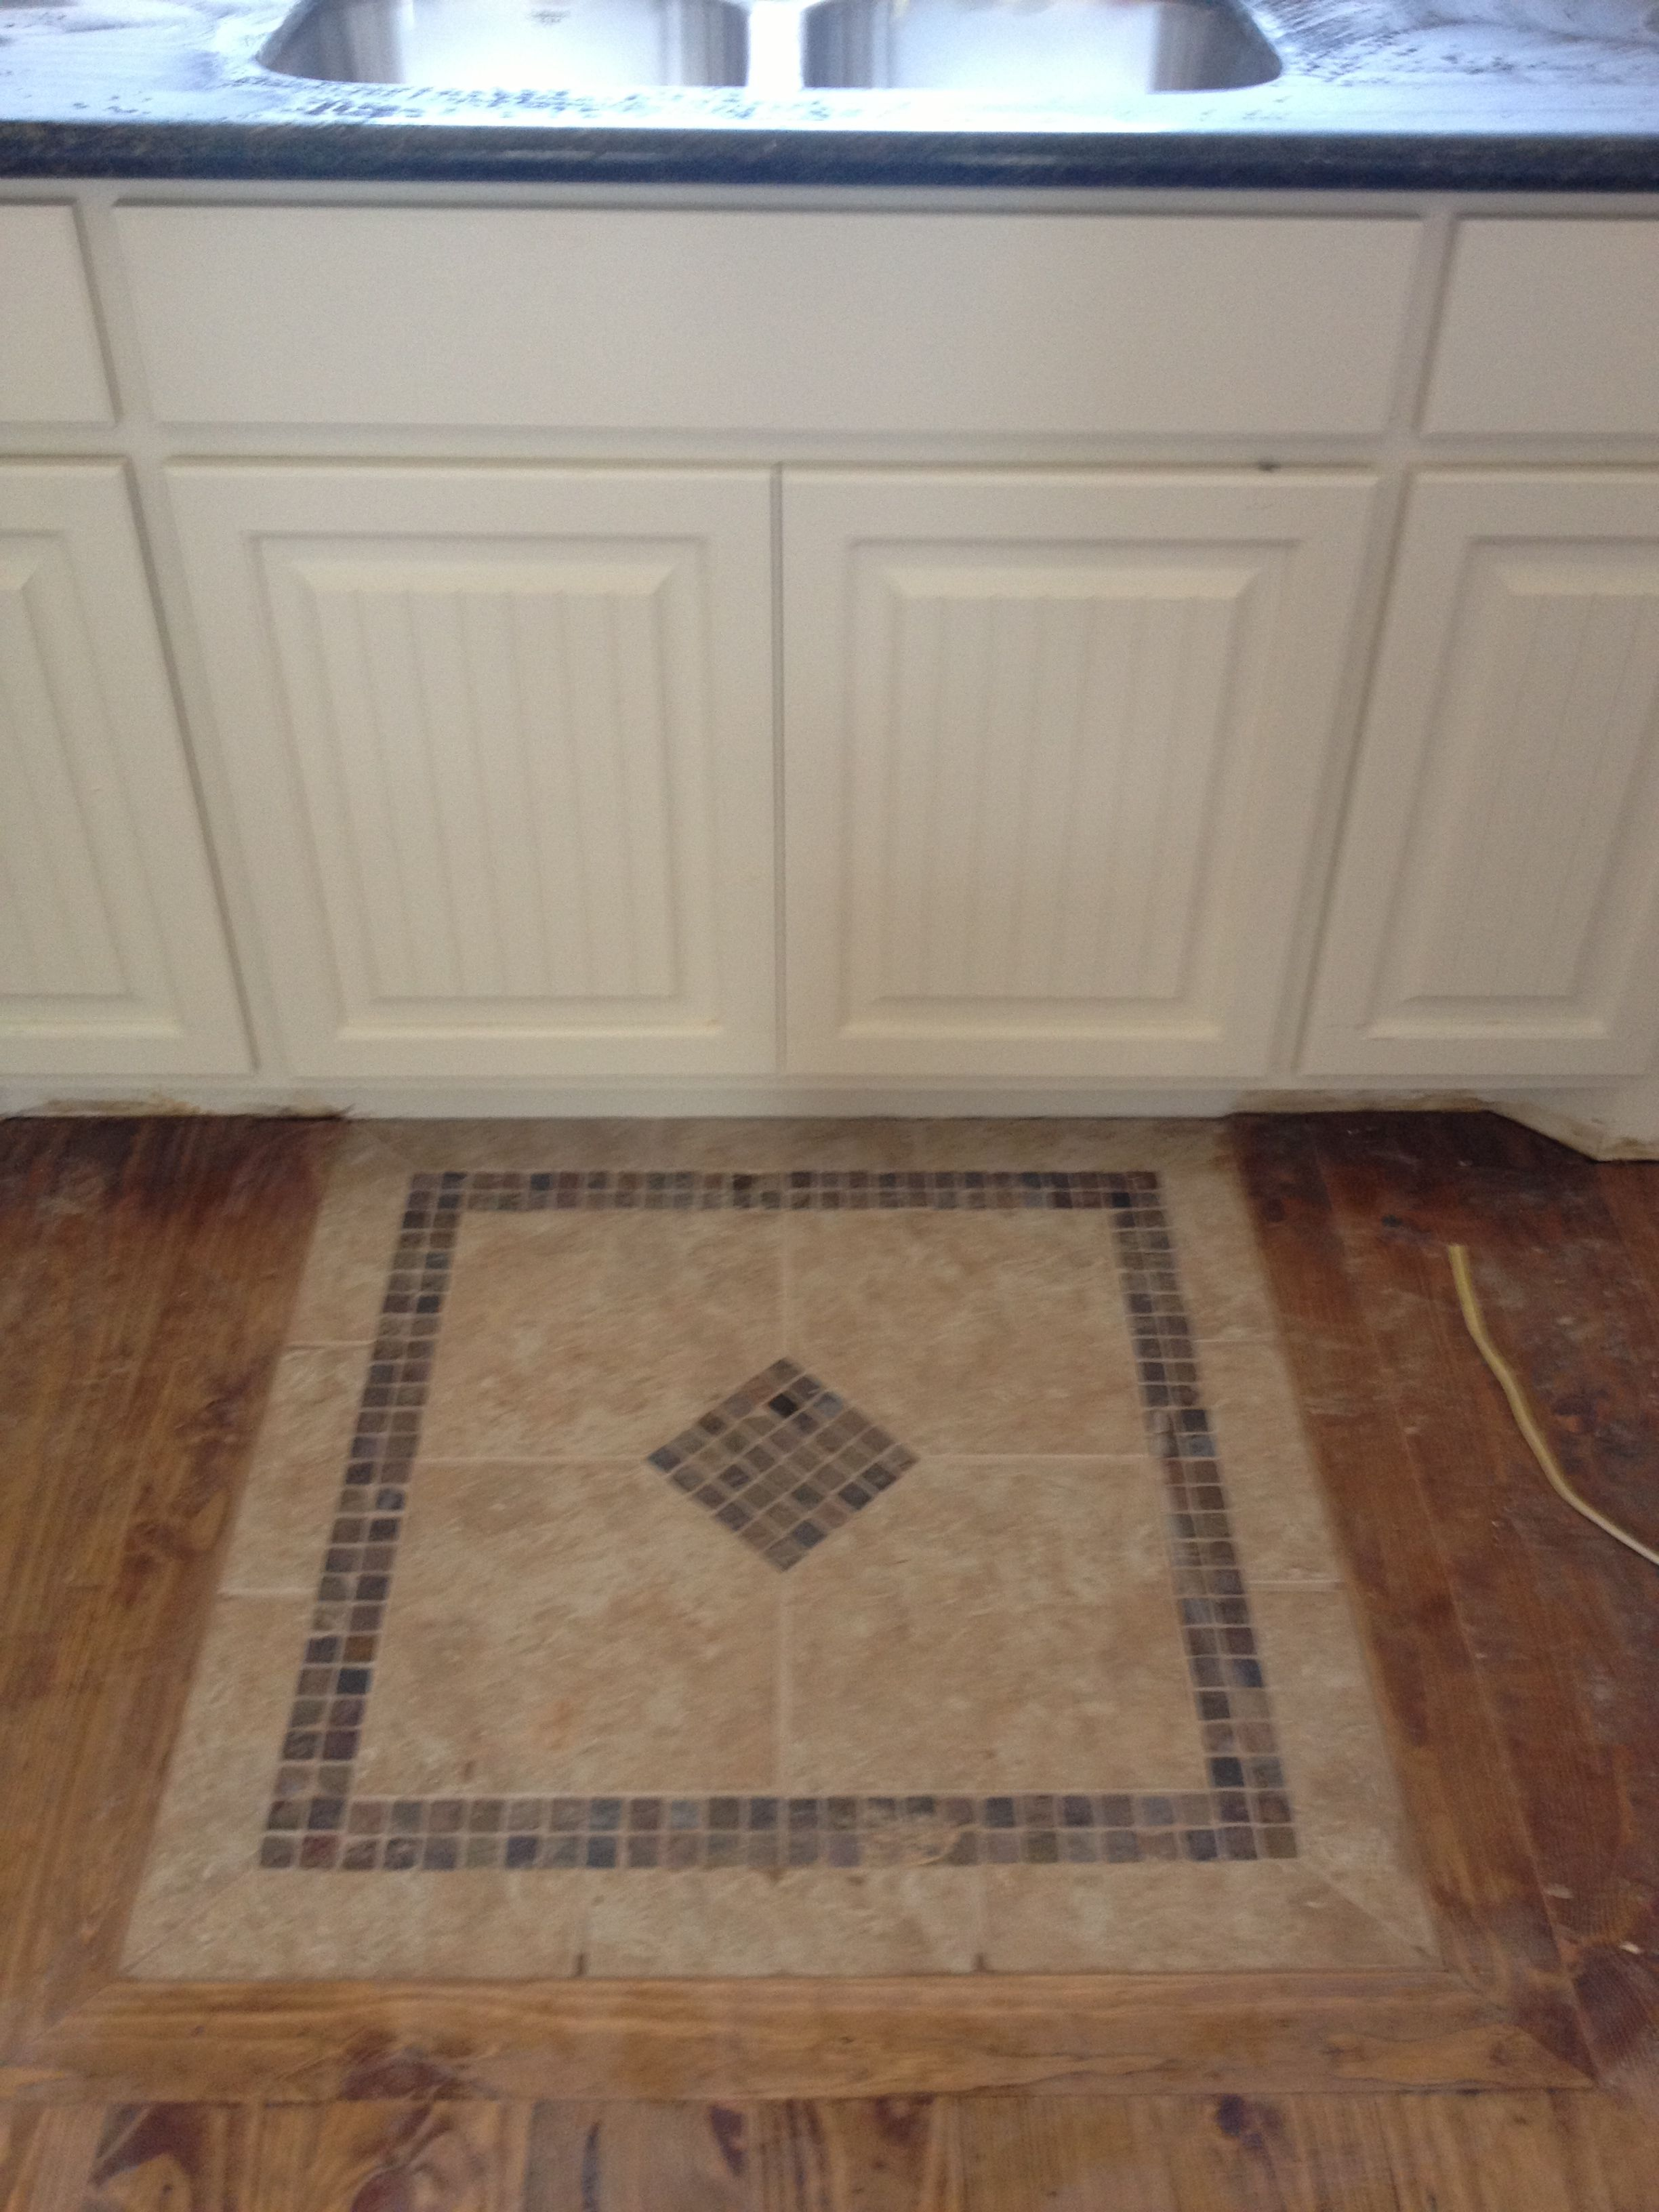 Tile Rug In Front Of Kitchen Sink Kitchen Rugs Sink Tile Rug Tile Floor Diy